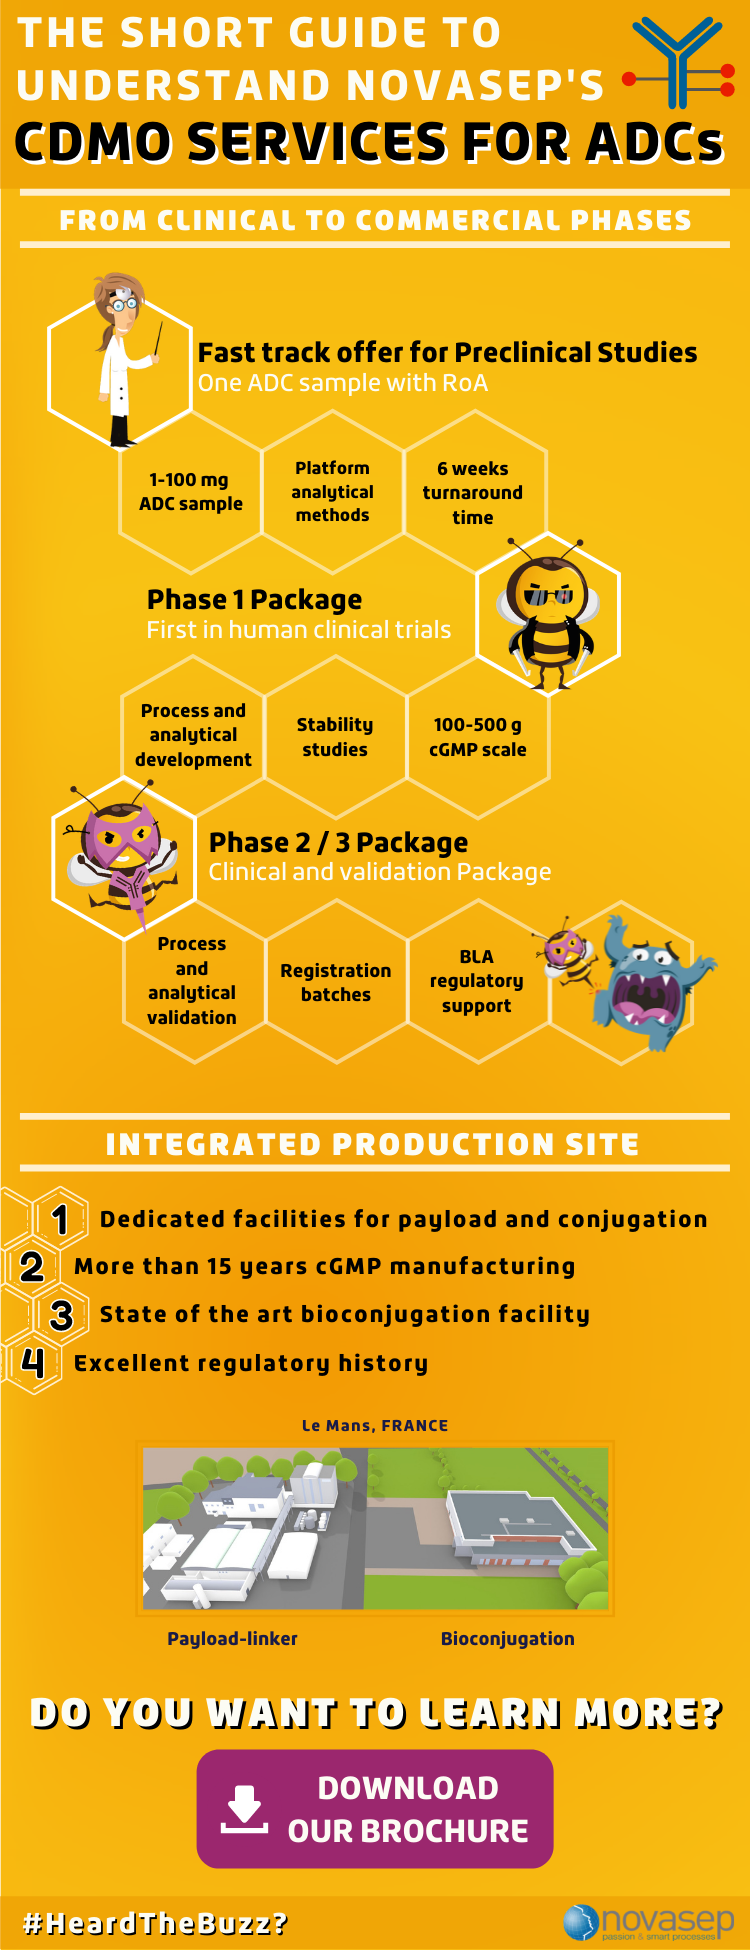 The Short Guide To Understand Novasep's CDMO Services For ADCs - Infographics